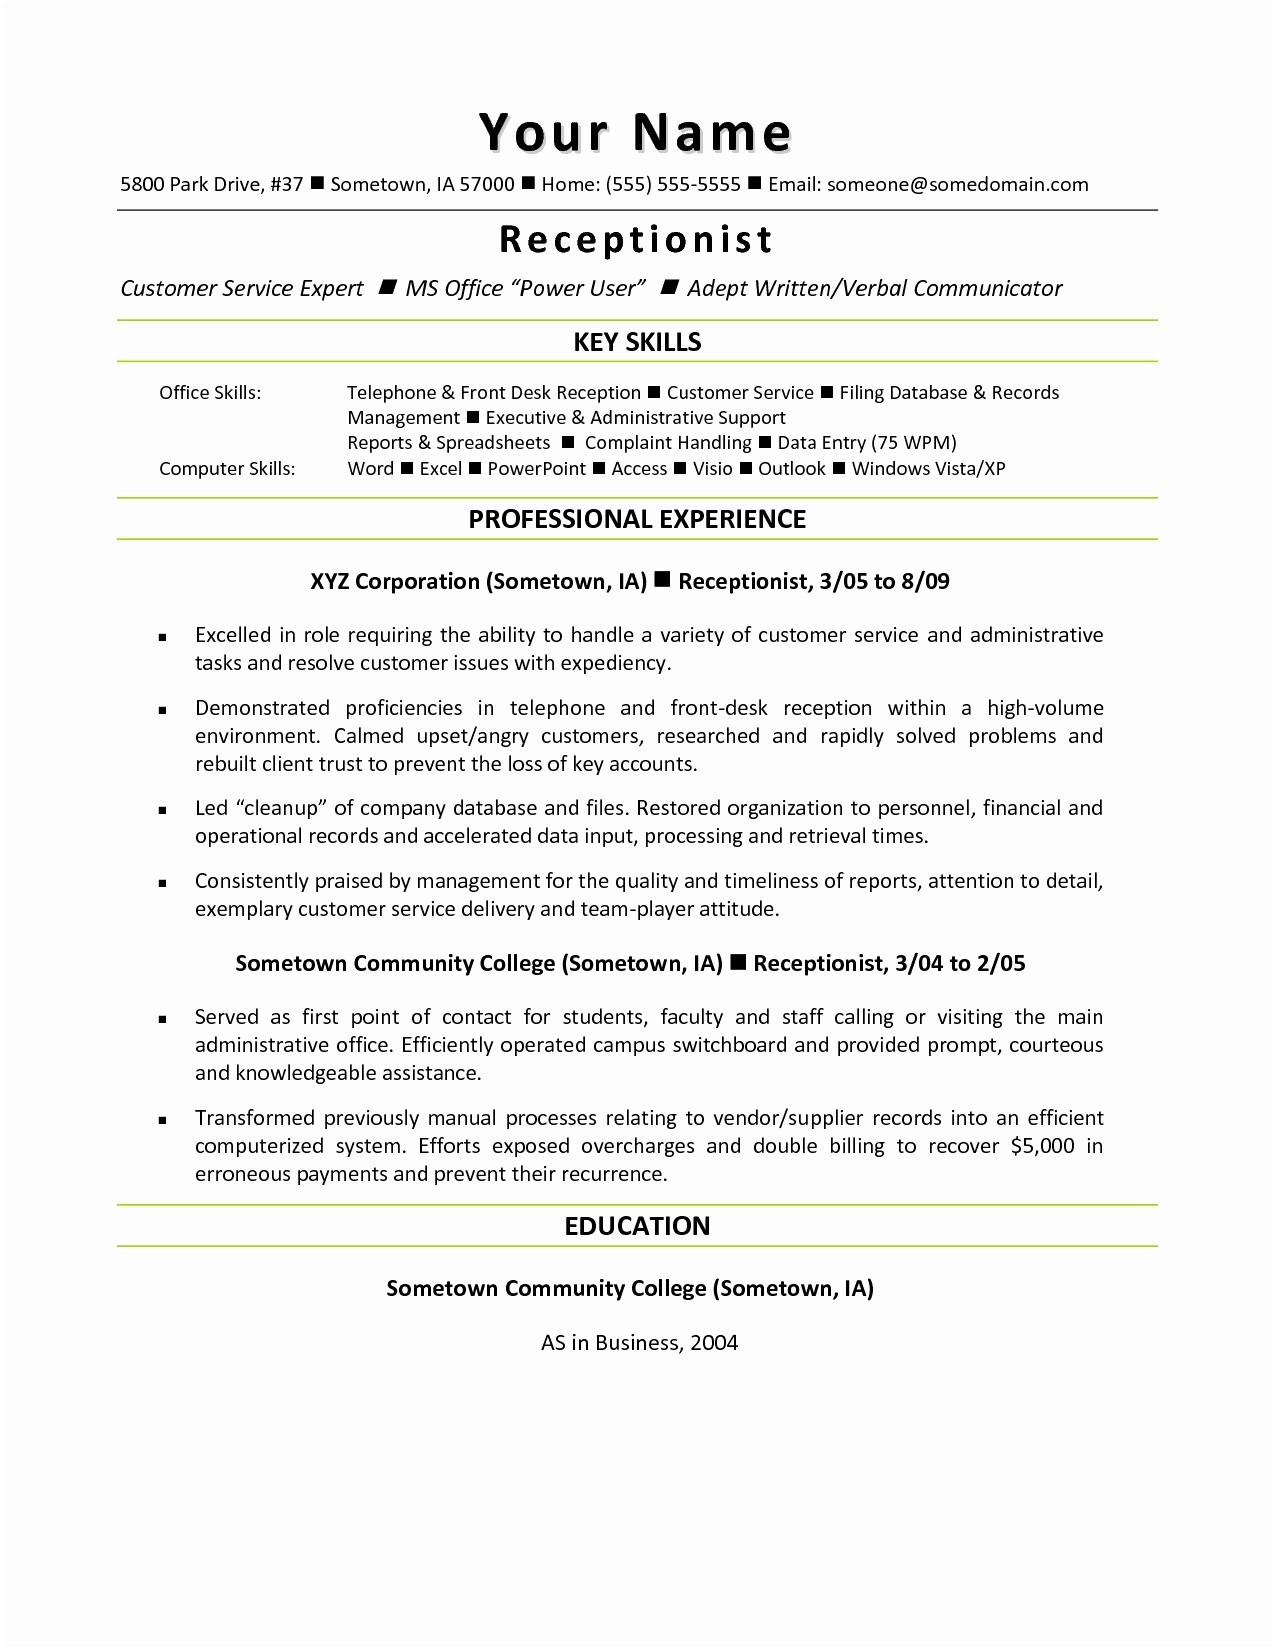 Job Application Cover Letter Template Word - Resume Microsoft Word Fresh Resume Mail format Sample Fresh